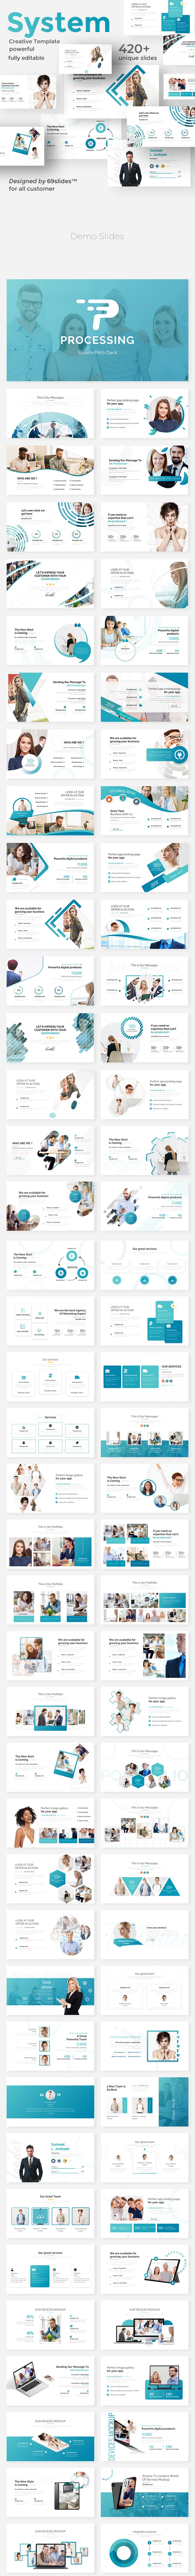 Processing System Powerpoint Pitch Deck Template - Business PowerPoint Templates